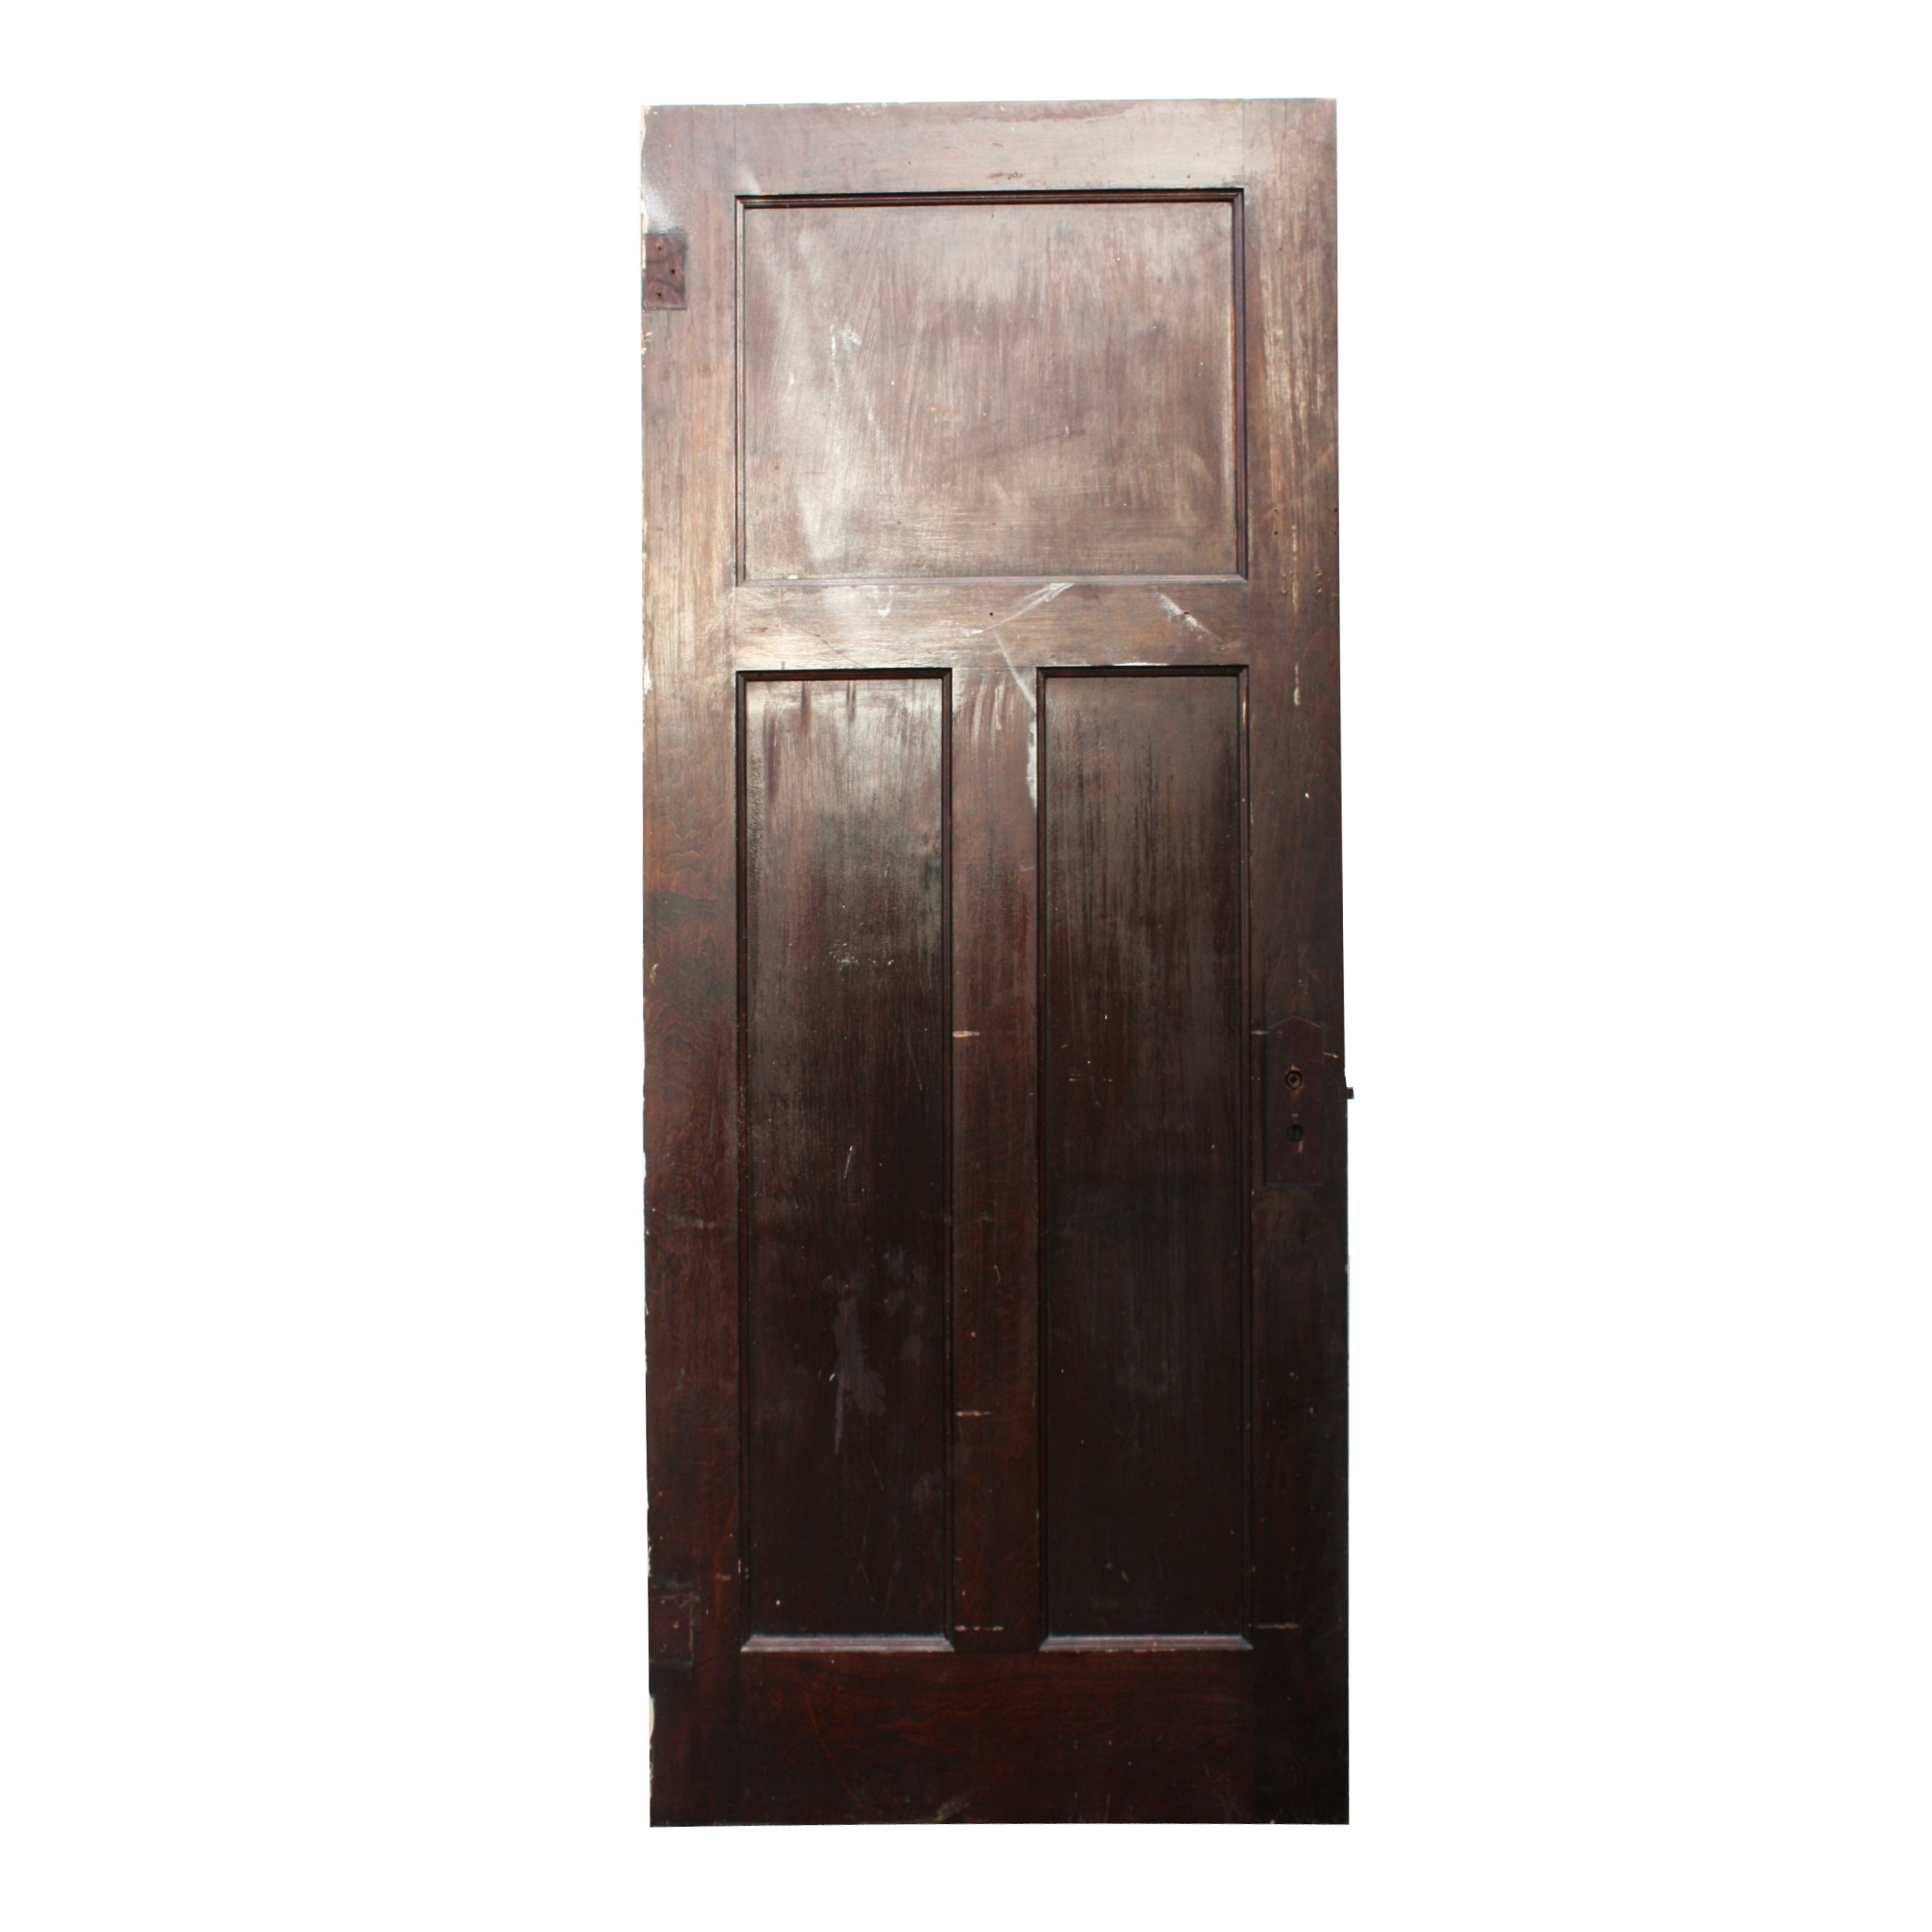 Product of doors solid wooden a 2 panel main door office for Exterior wood doors for sale